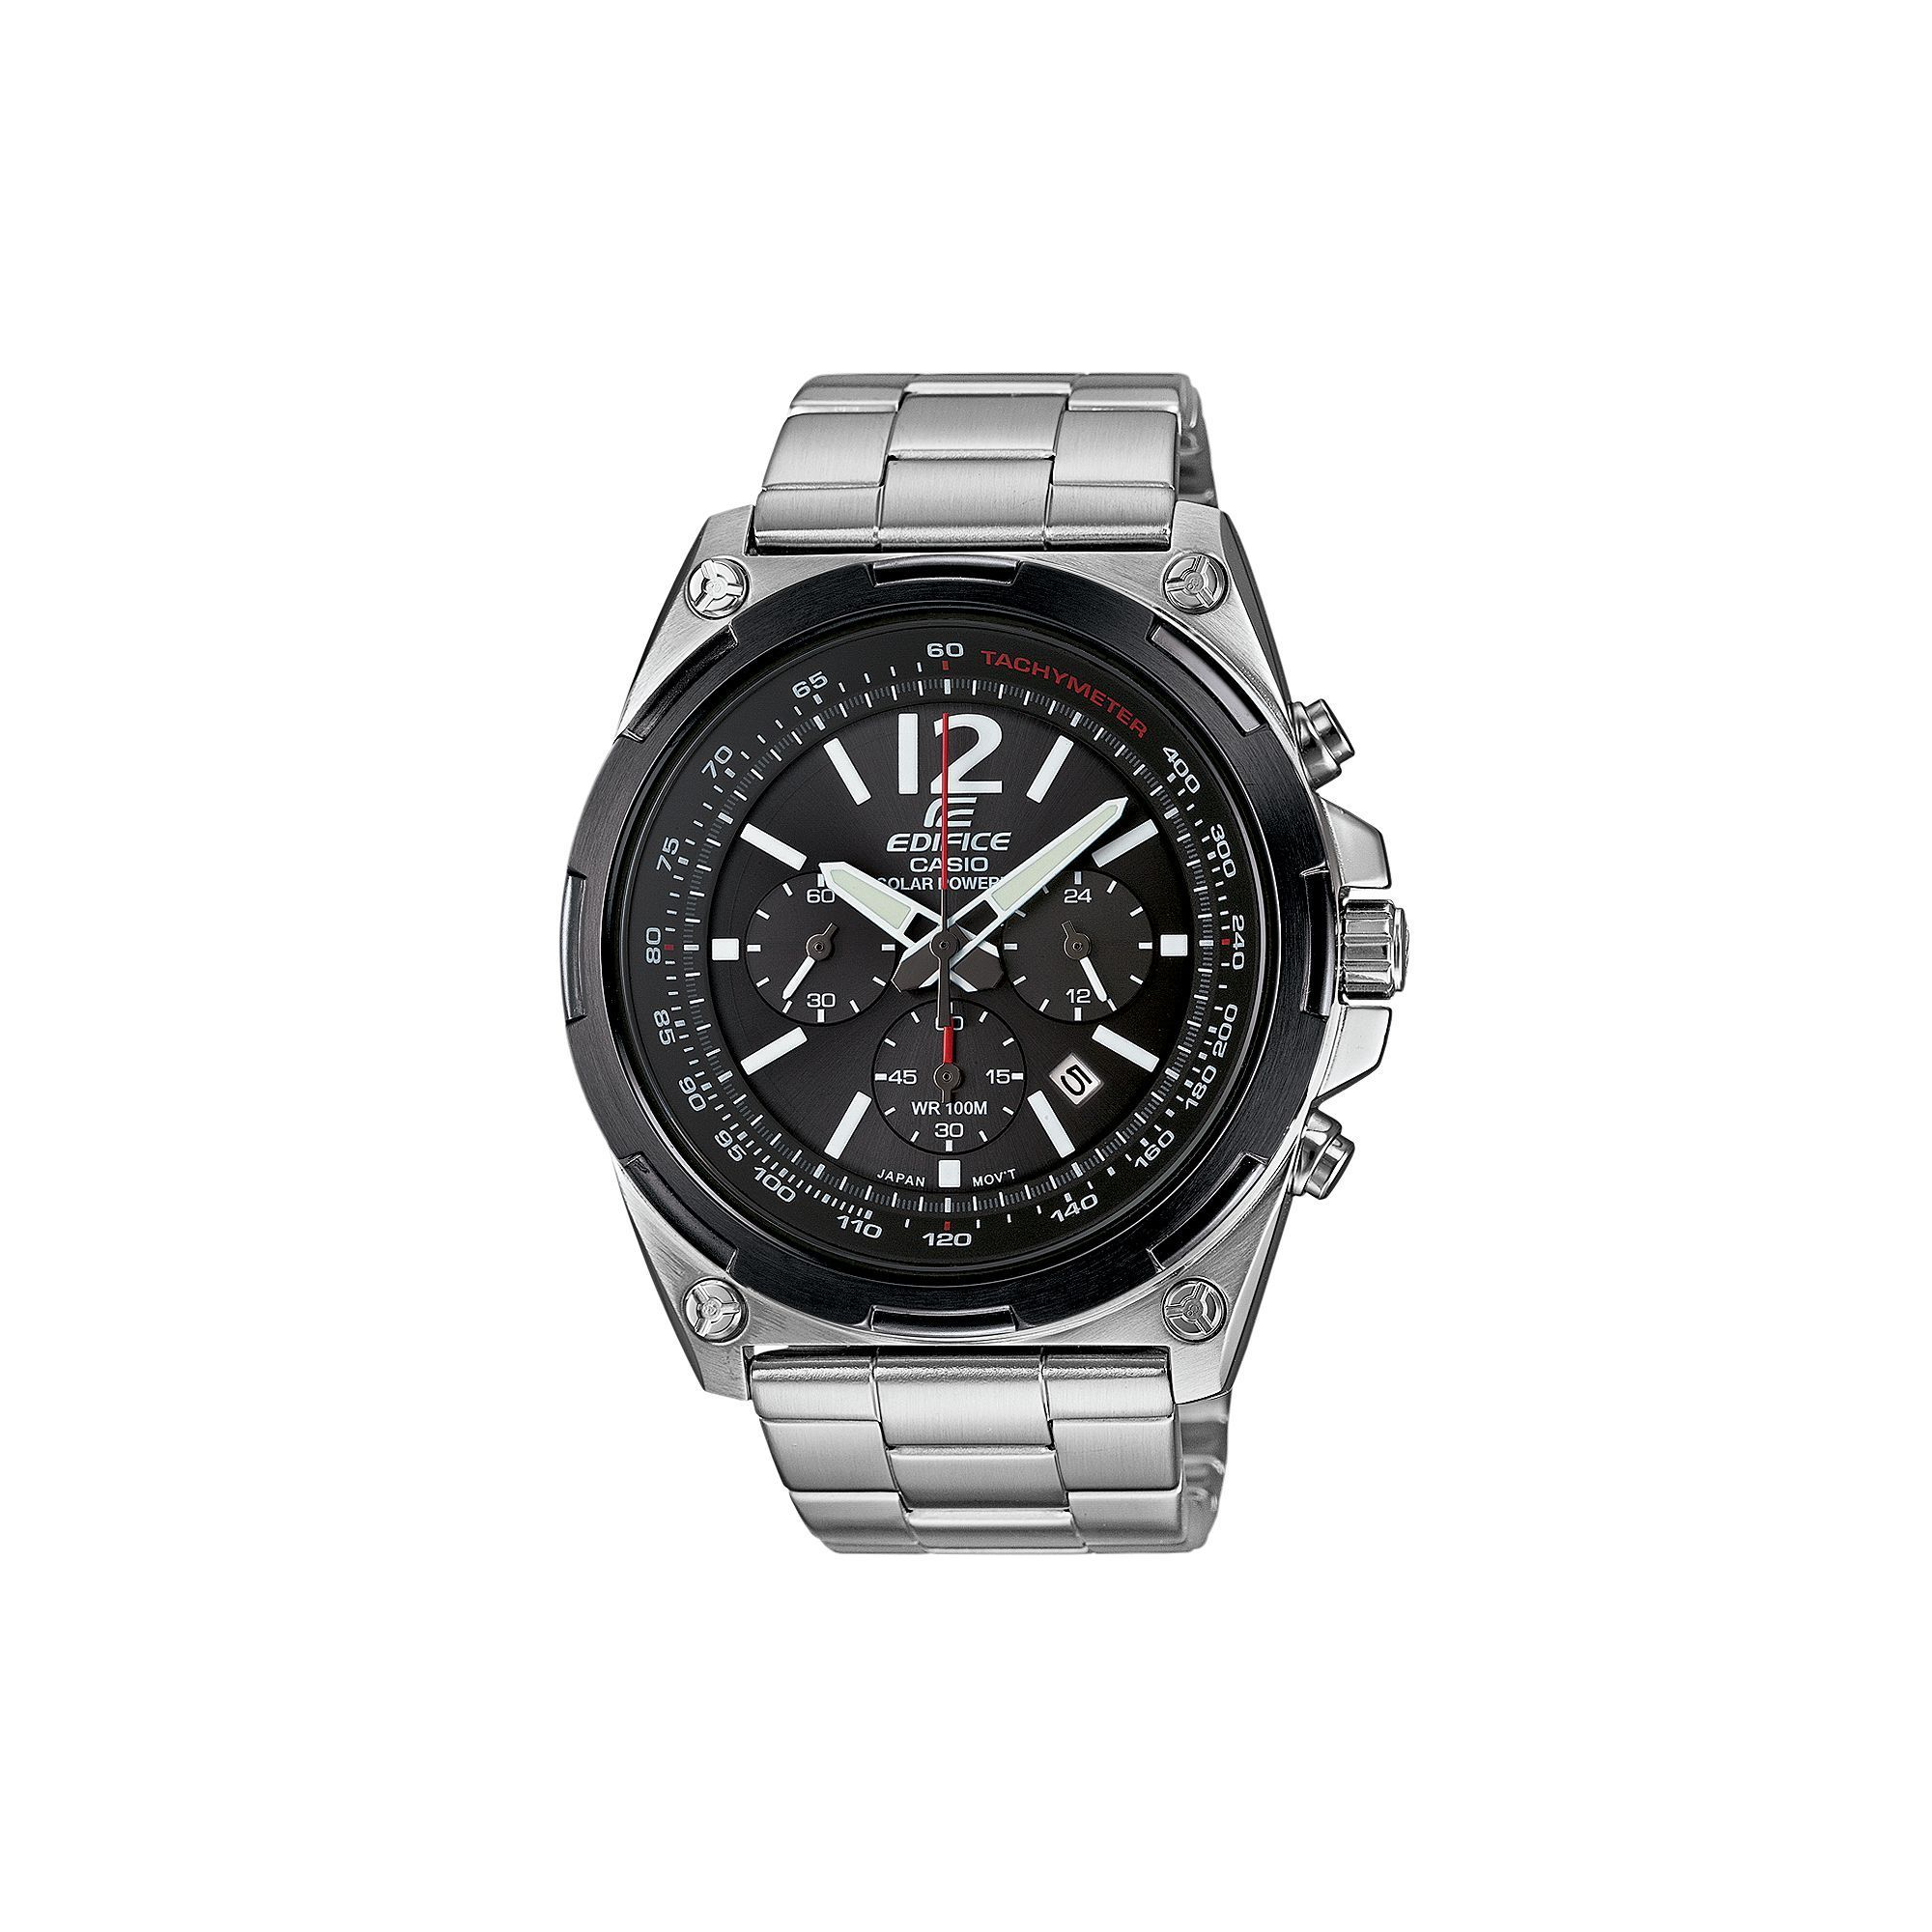 Casio Men's Edifice Stainless Steel Solar Chronograph Watch - EFR545SBDB-1BVCF, Grey